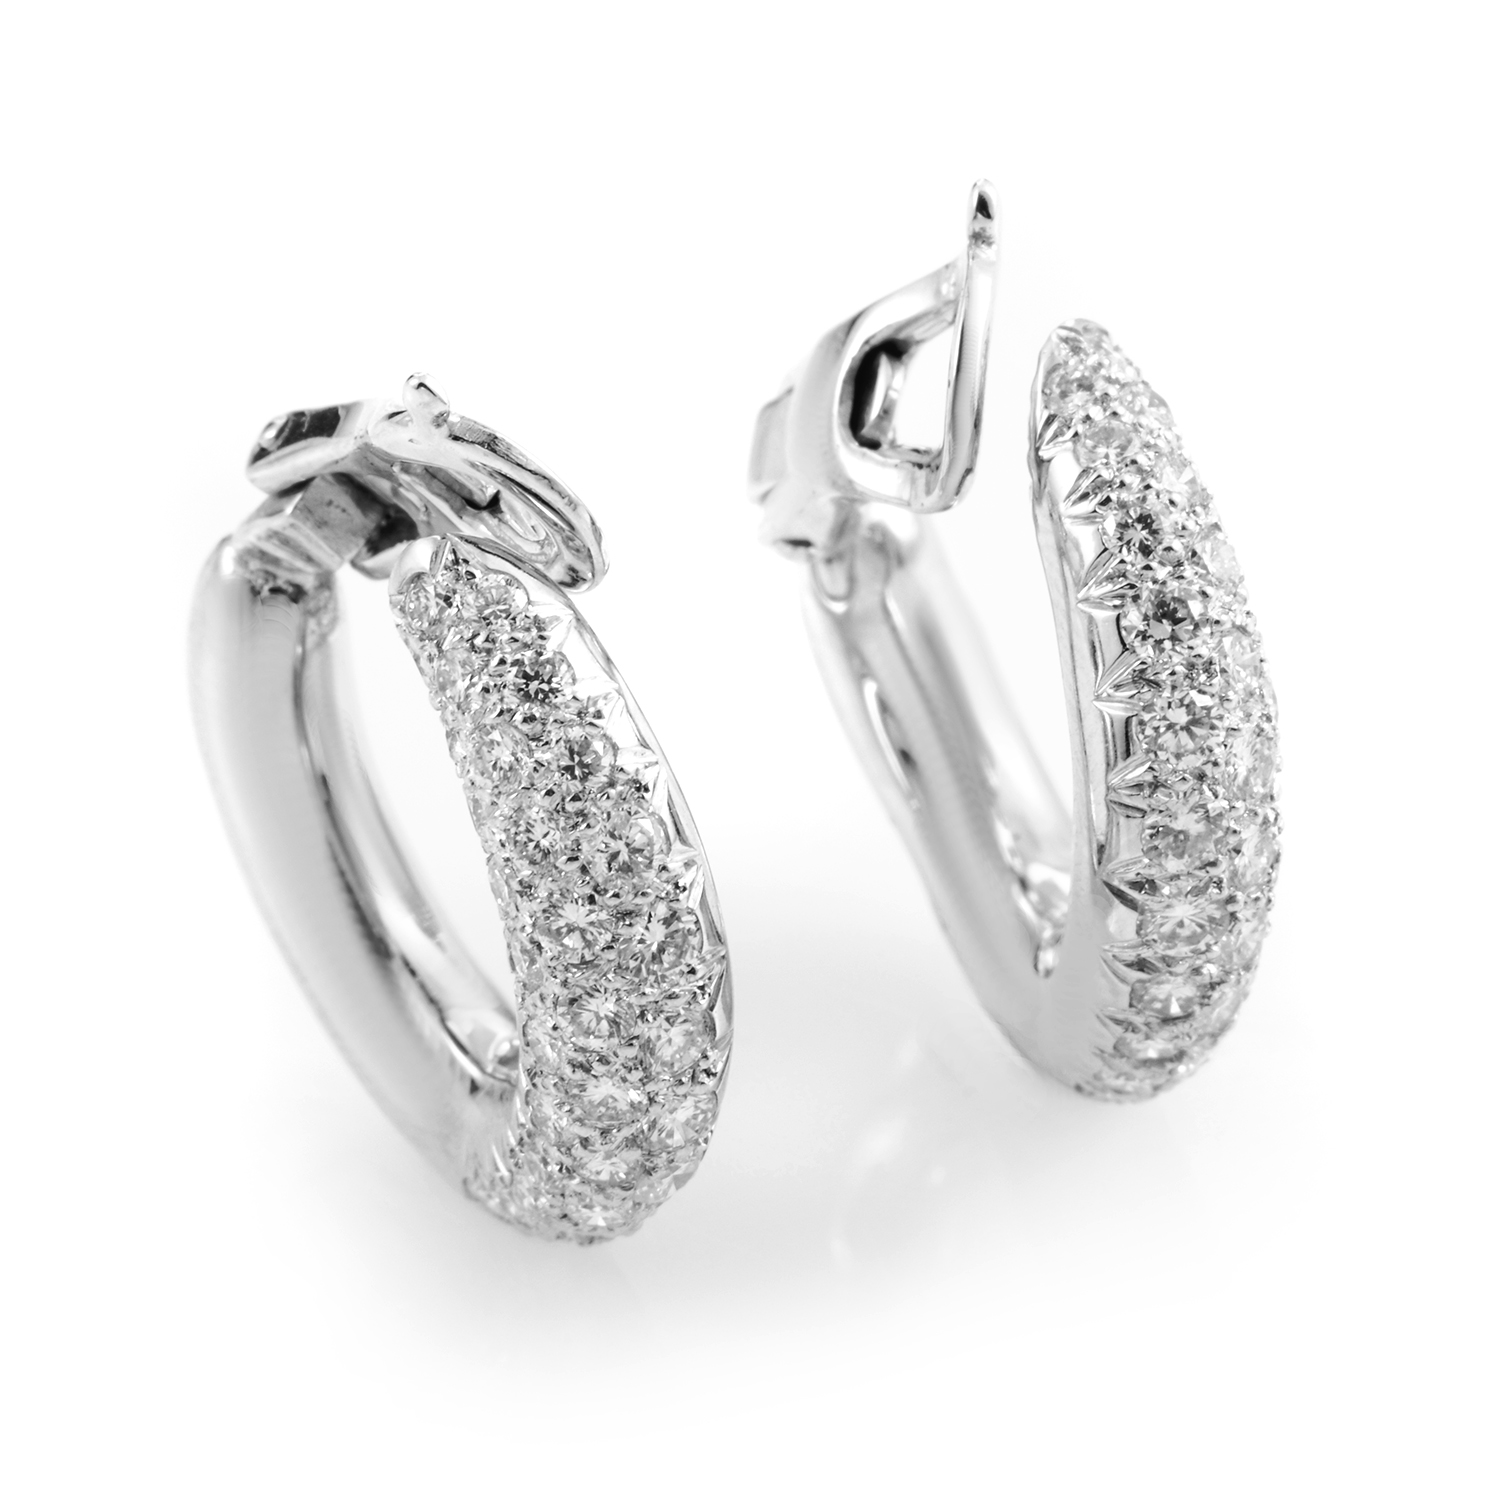 Van Cleef & Arpels 18K White Gold Diamond Pave Hoop Earrings